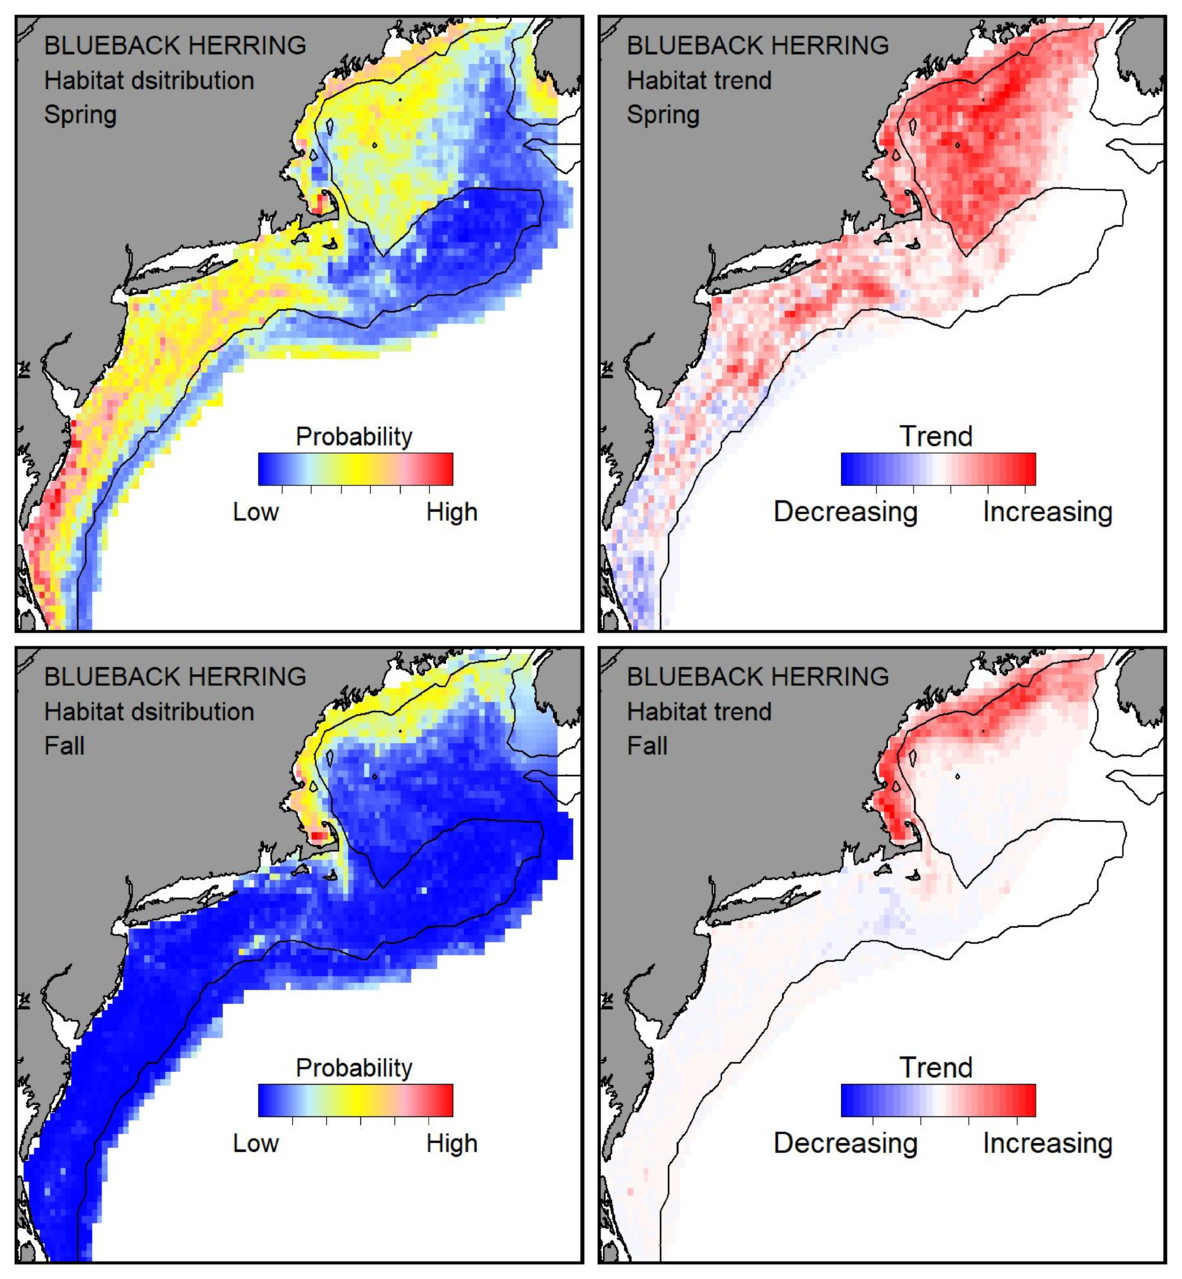 Top row: Probable habitat distribution for blueback herring showing the highest concentration and increasing trend in the Gulf of Maine during the spring. Bottom row: Probable habitat distribution for blueback herring showing the highest concentration and increasing trend in the Gulf of Maine during the fall.